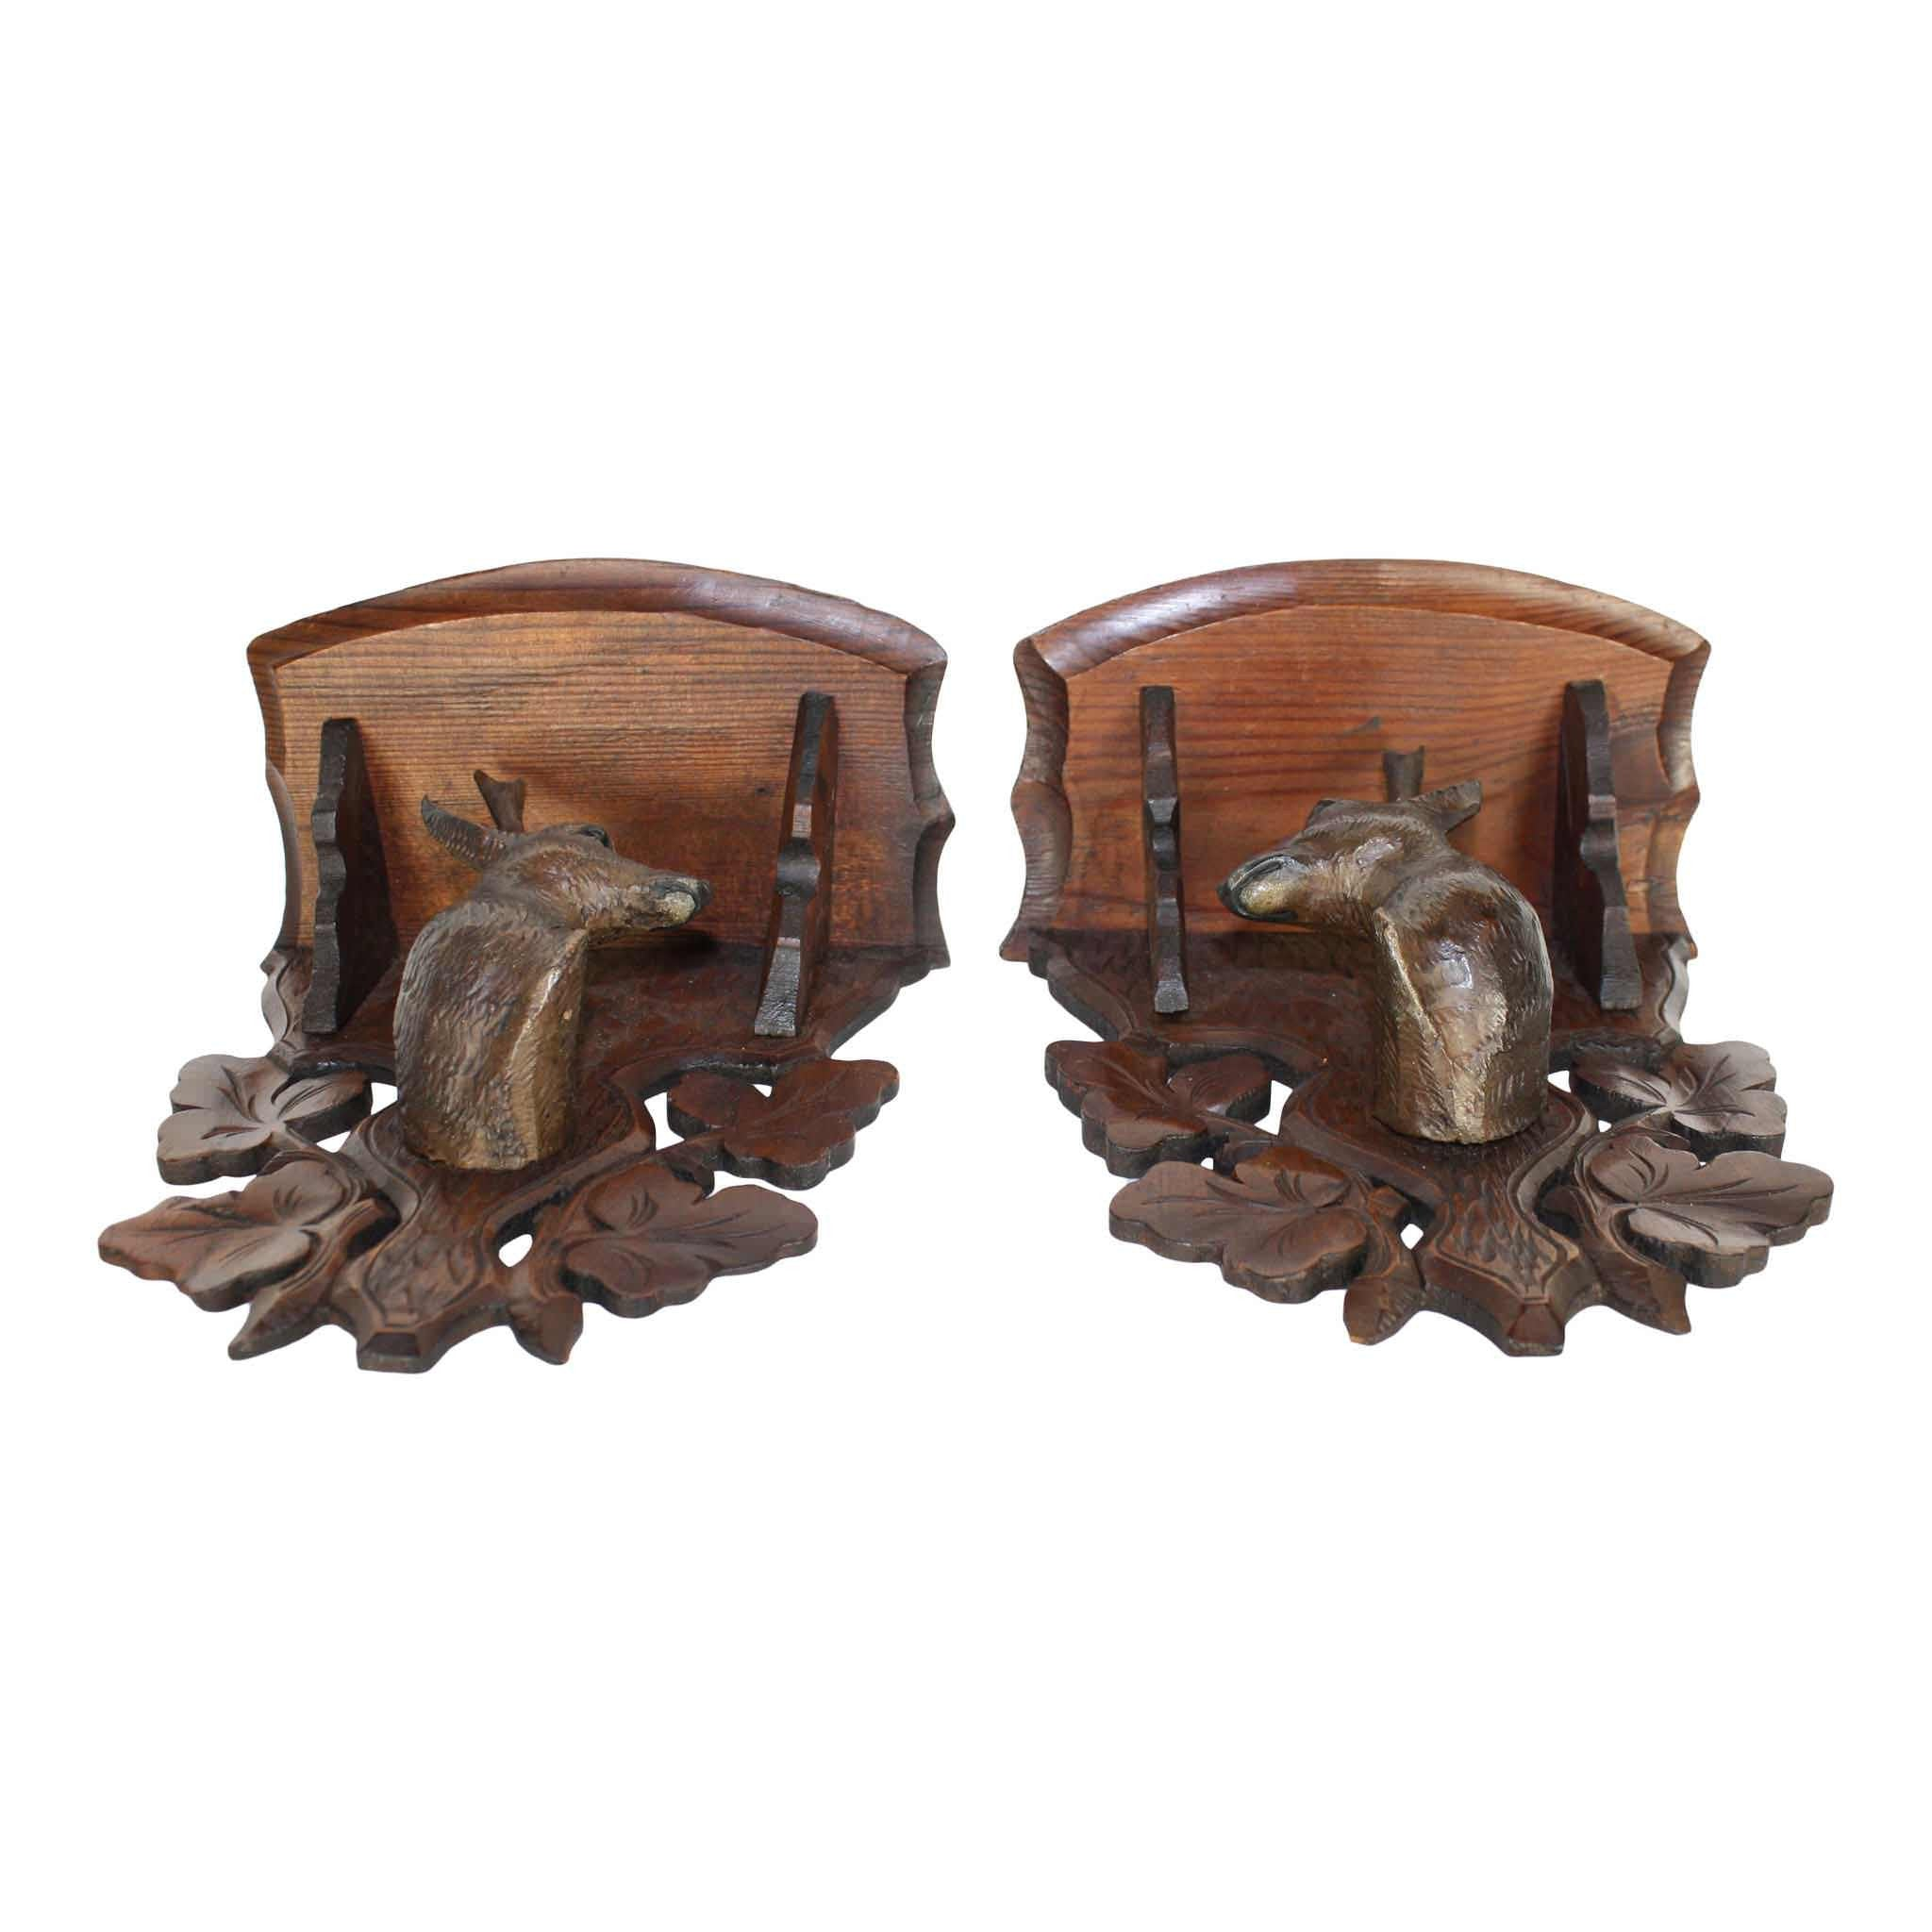 Carved Shelves with Deer Set/2